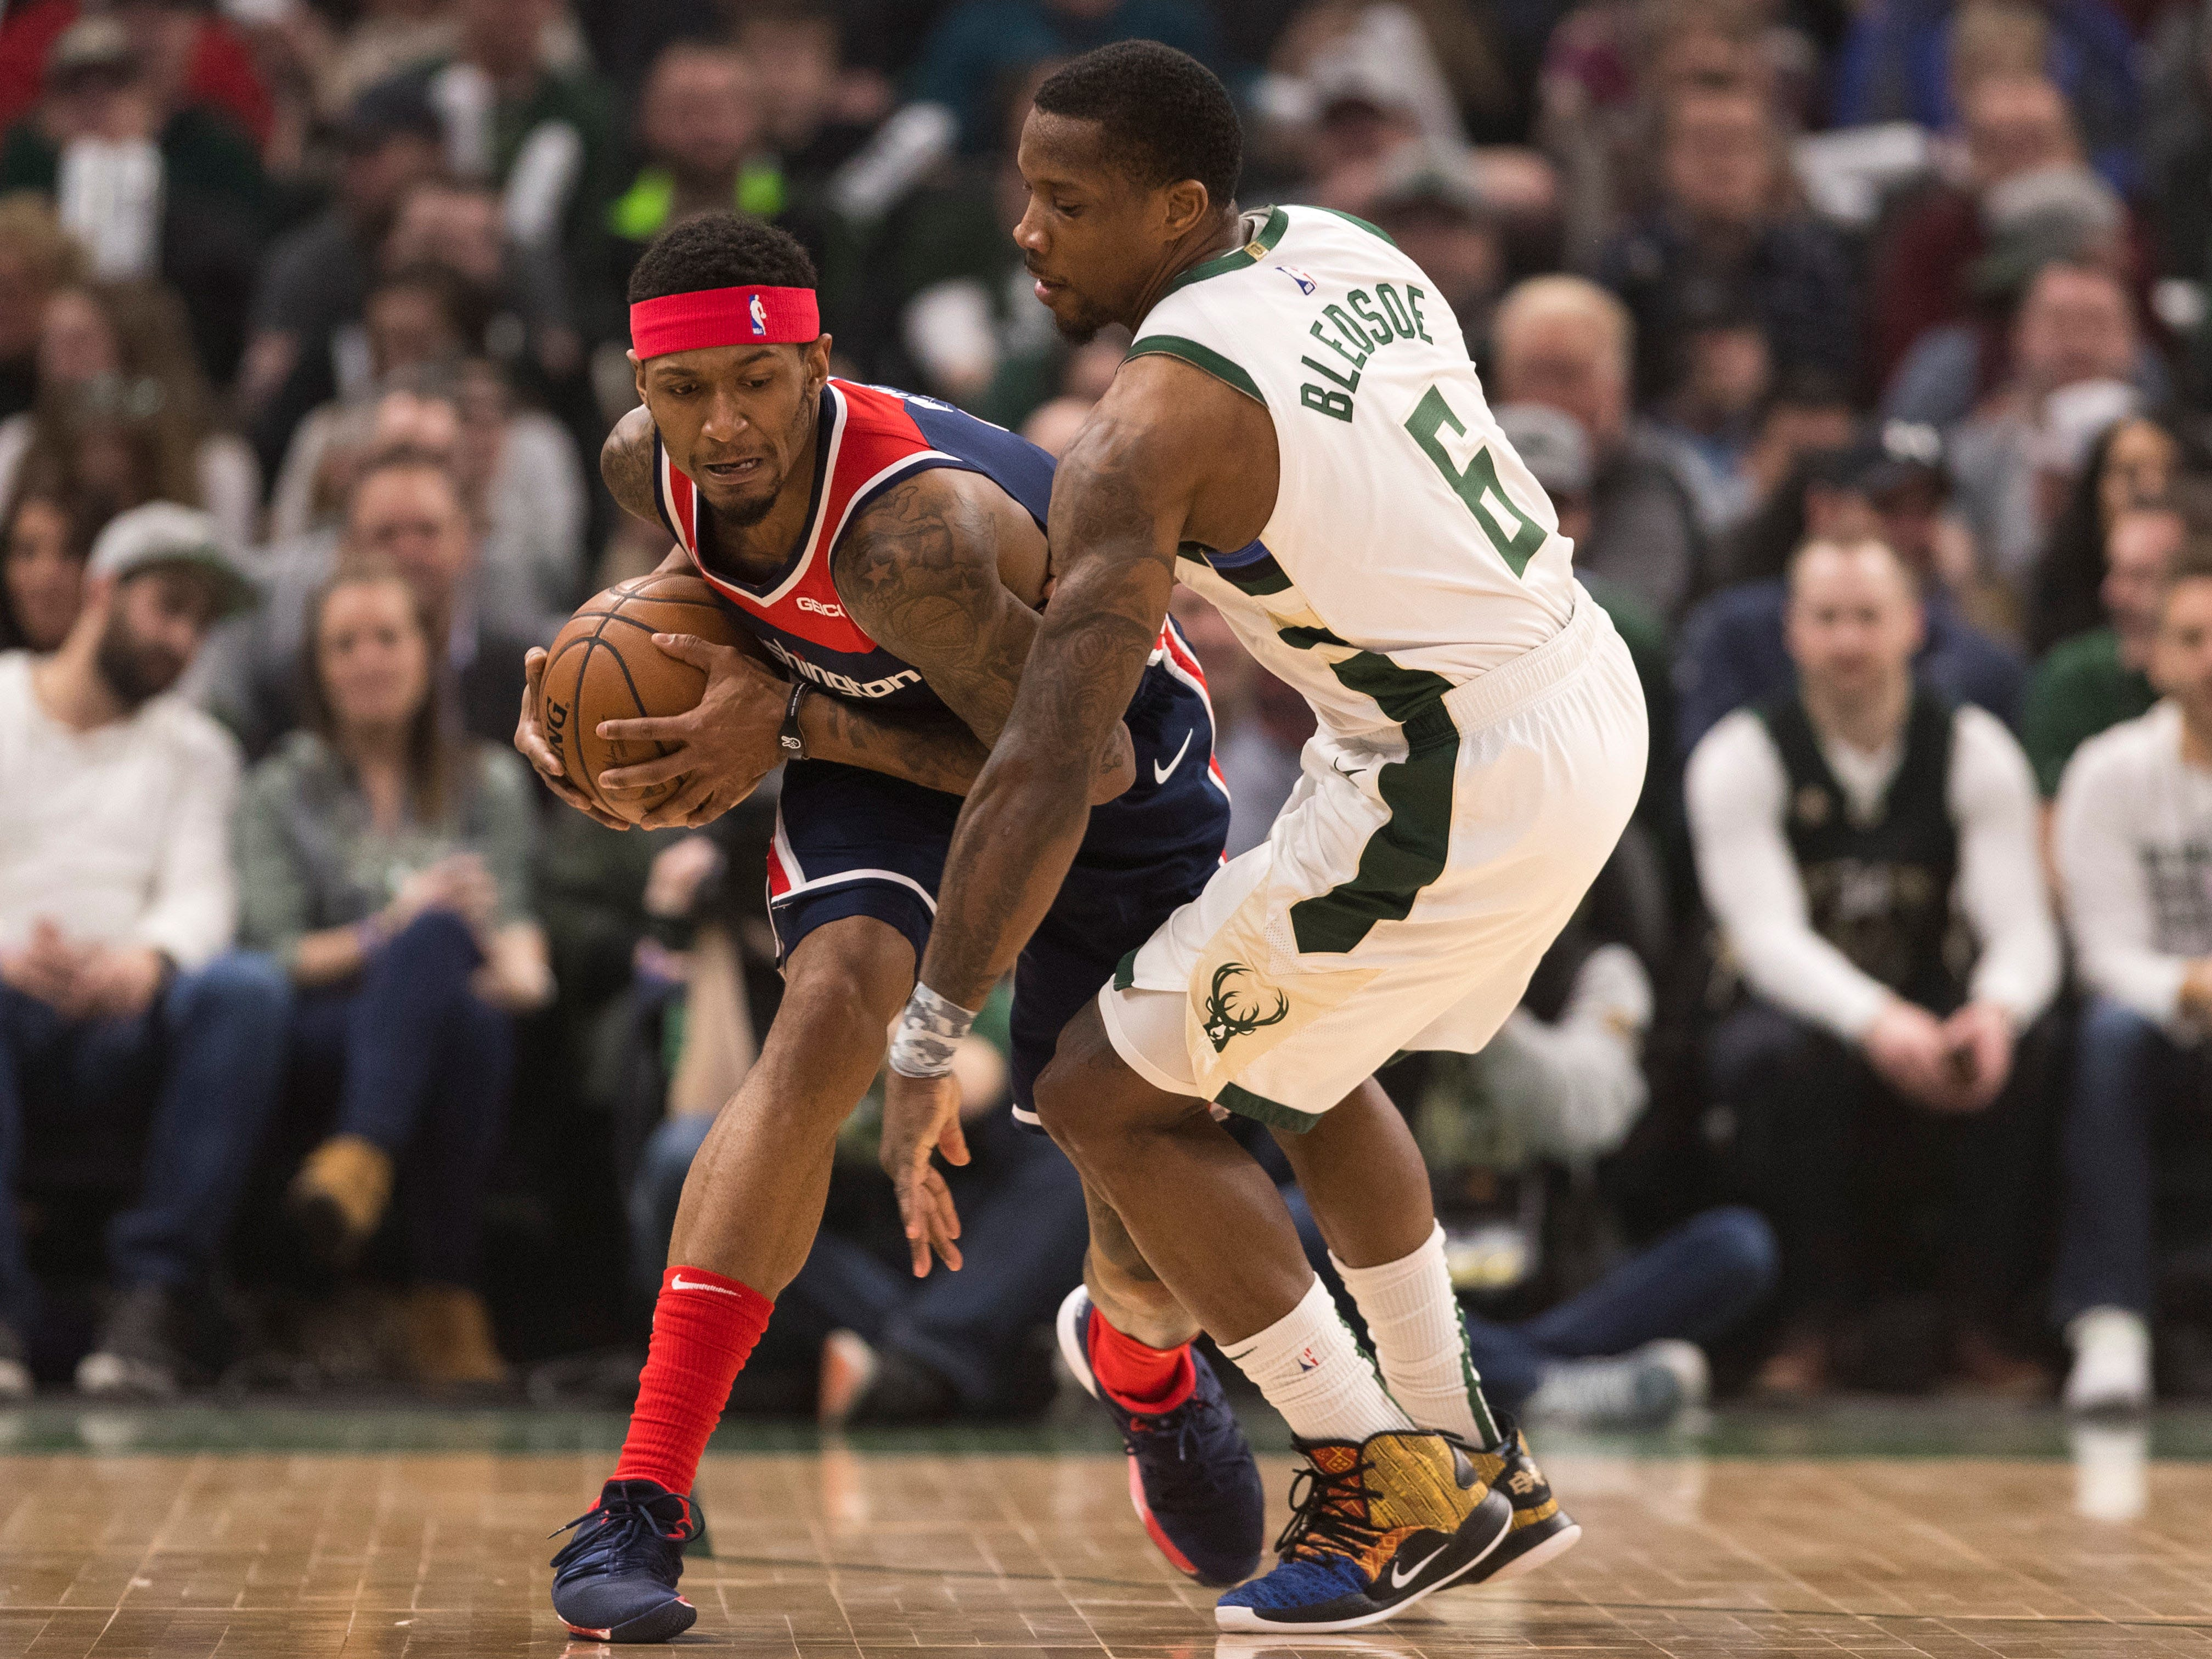 Bucks guard Eric Bledsoe pressures Wizards guard Bradley Beal during the first quarter Wednesday night.